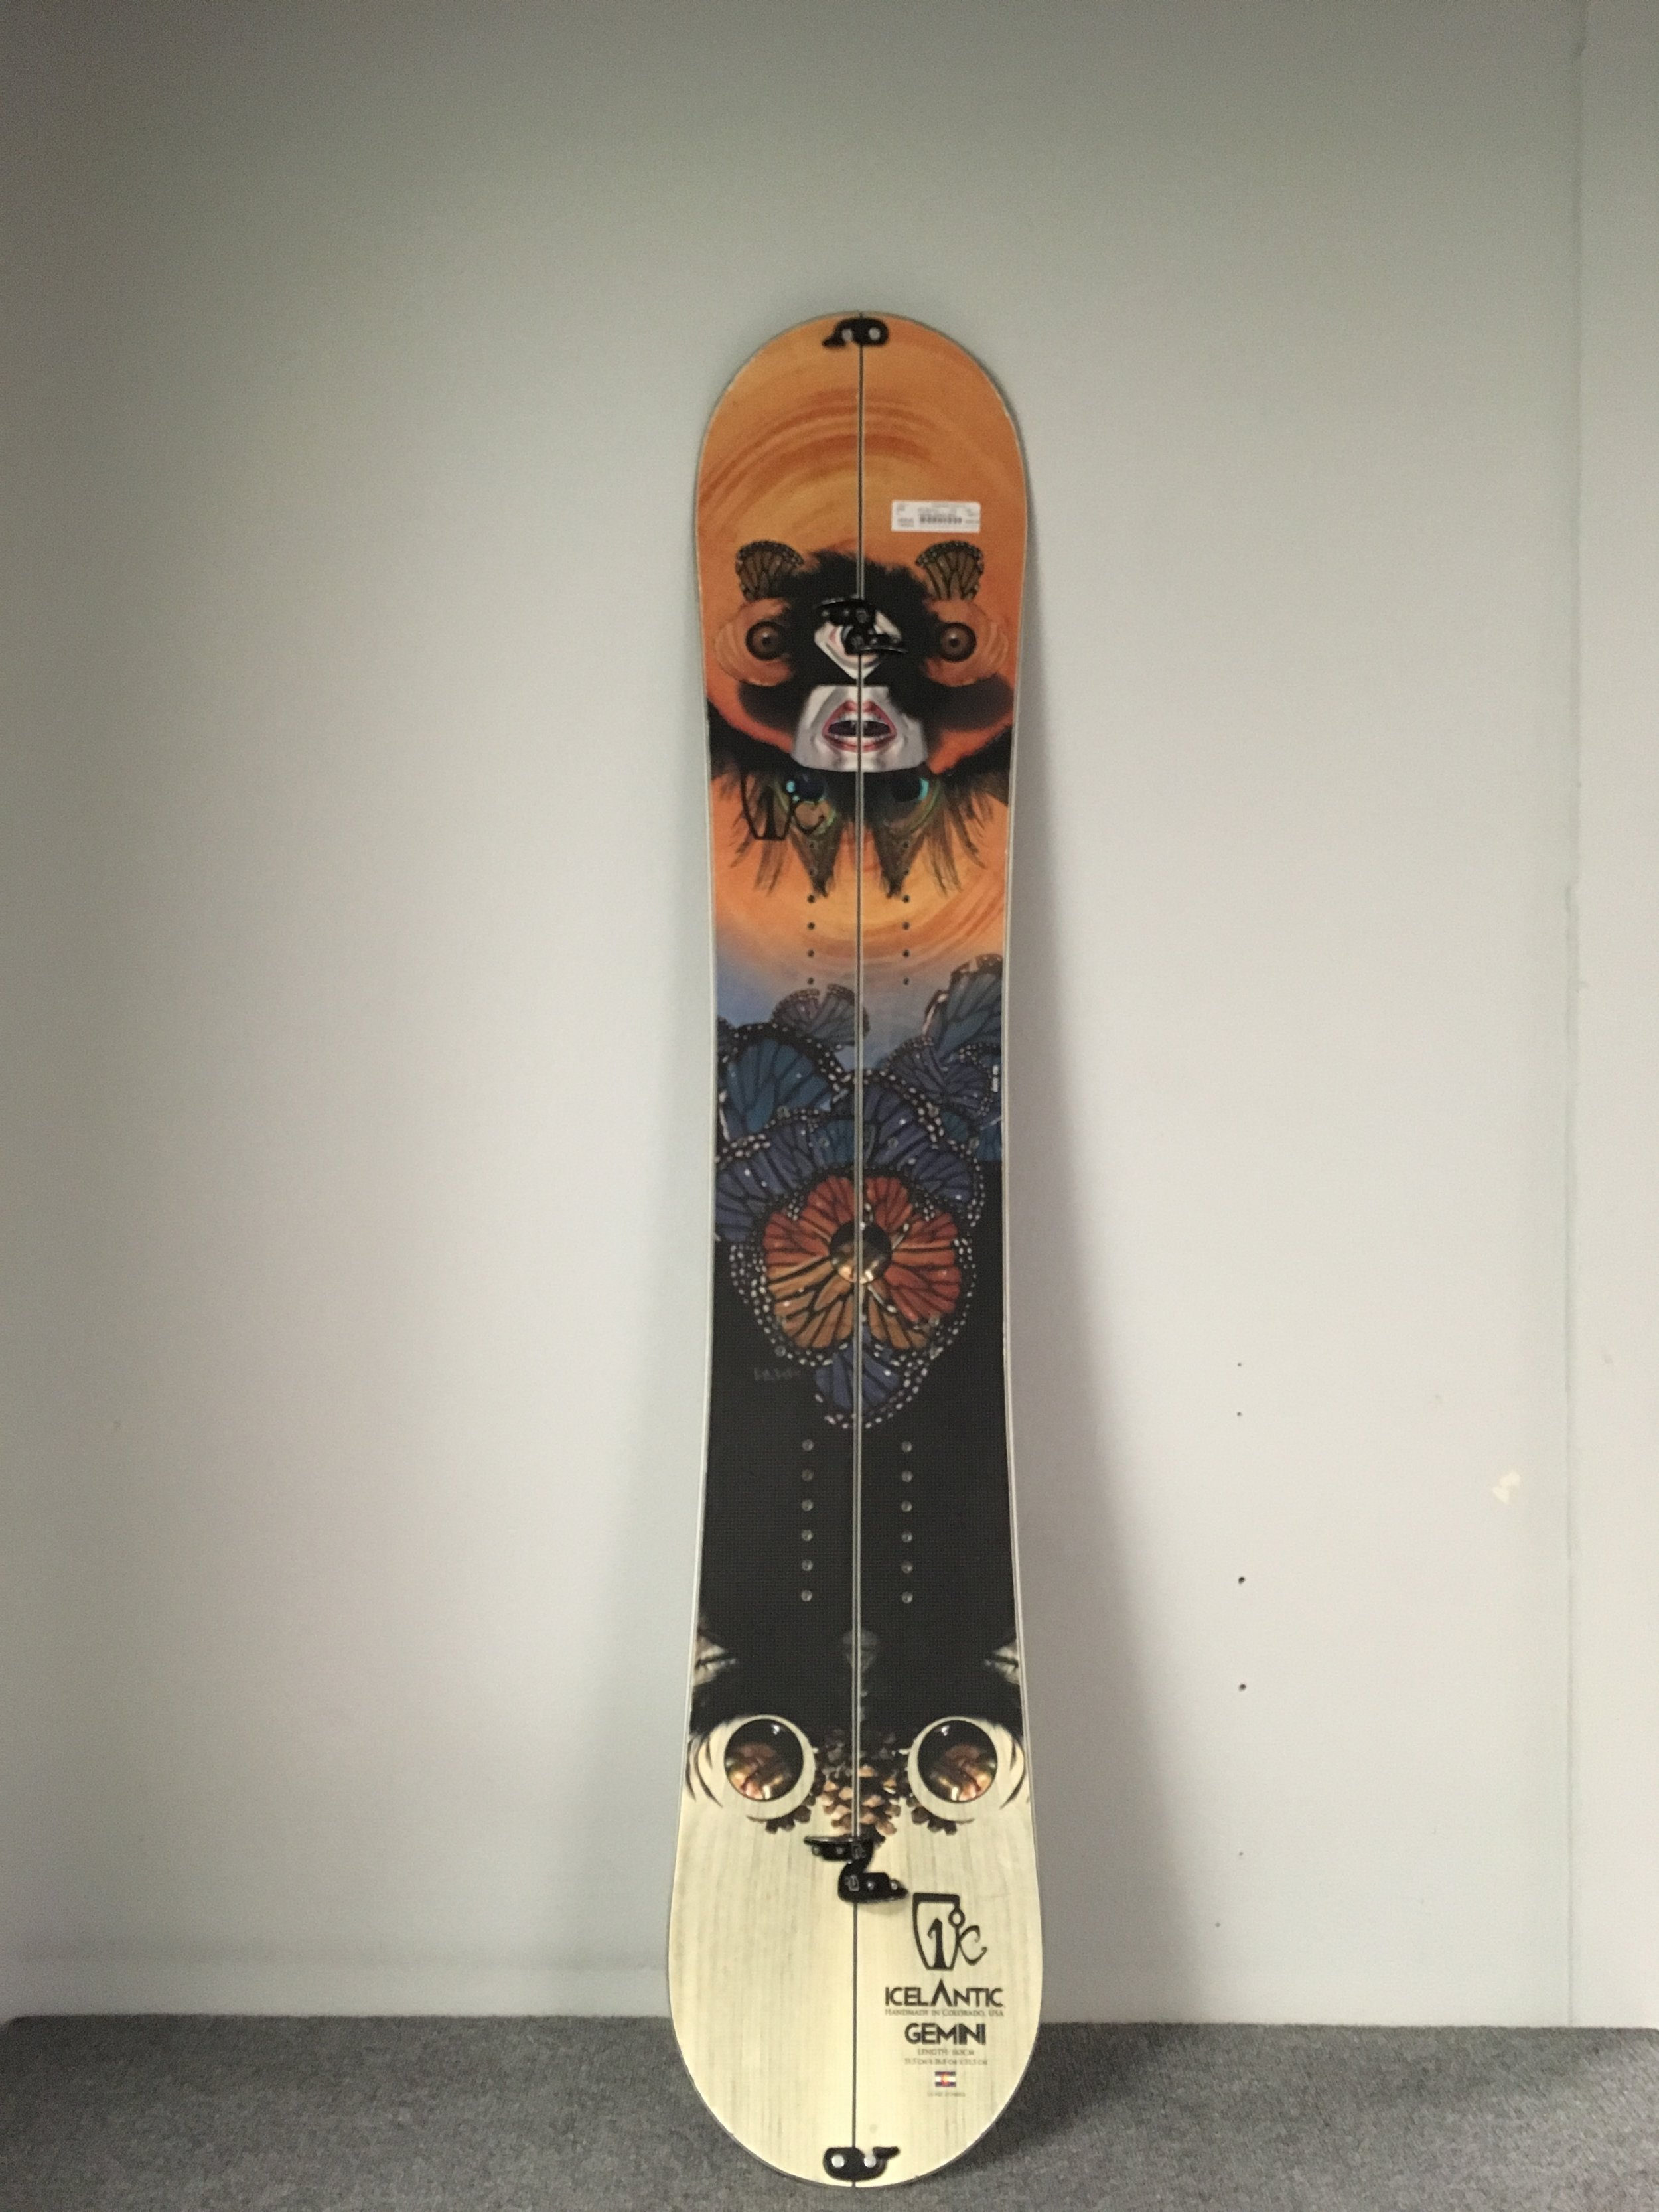 Get above the rain line with Icelantic's 163 Gemini Splitboard. The Gemini was built closely with Never Summer so you can expect all the similar features to NS boards, such as, carbonium top-sheet, rocker/camber profile, and bombproof materials. This board retails at $1,000 but we can you touring for $499!